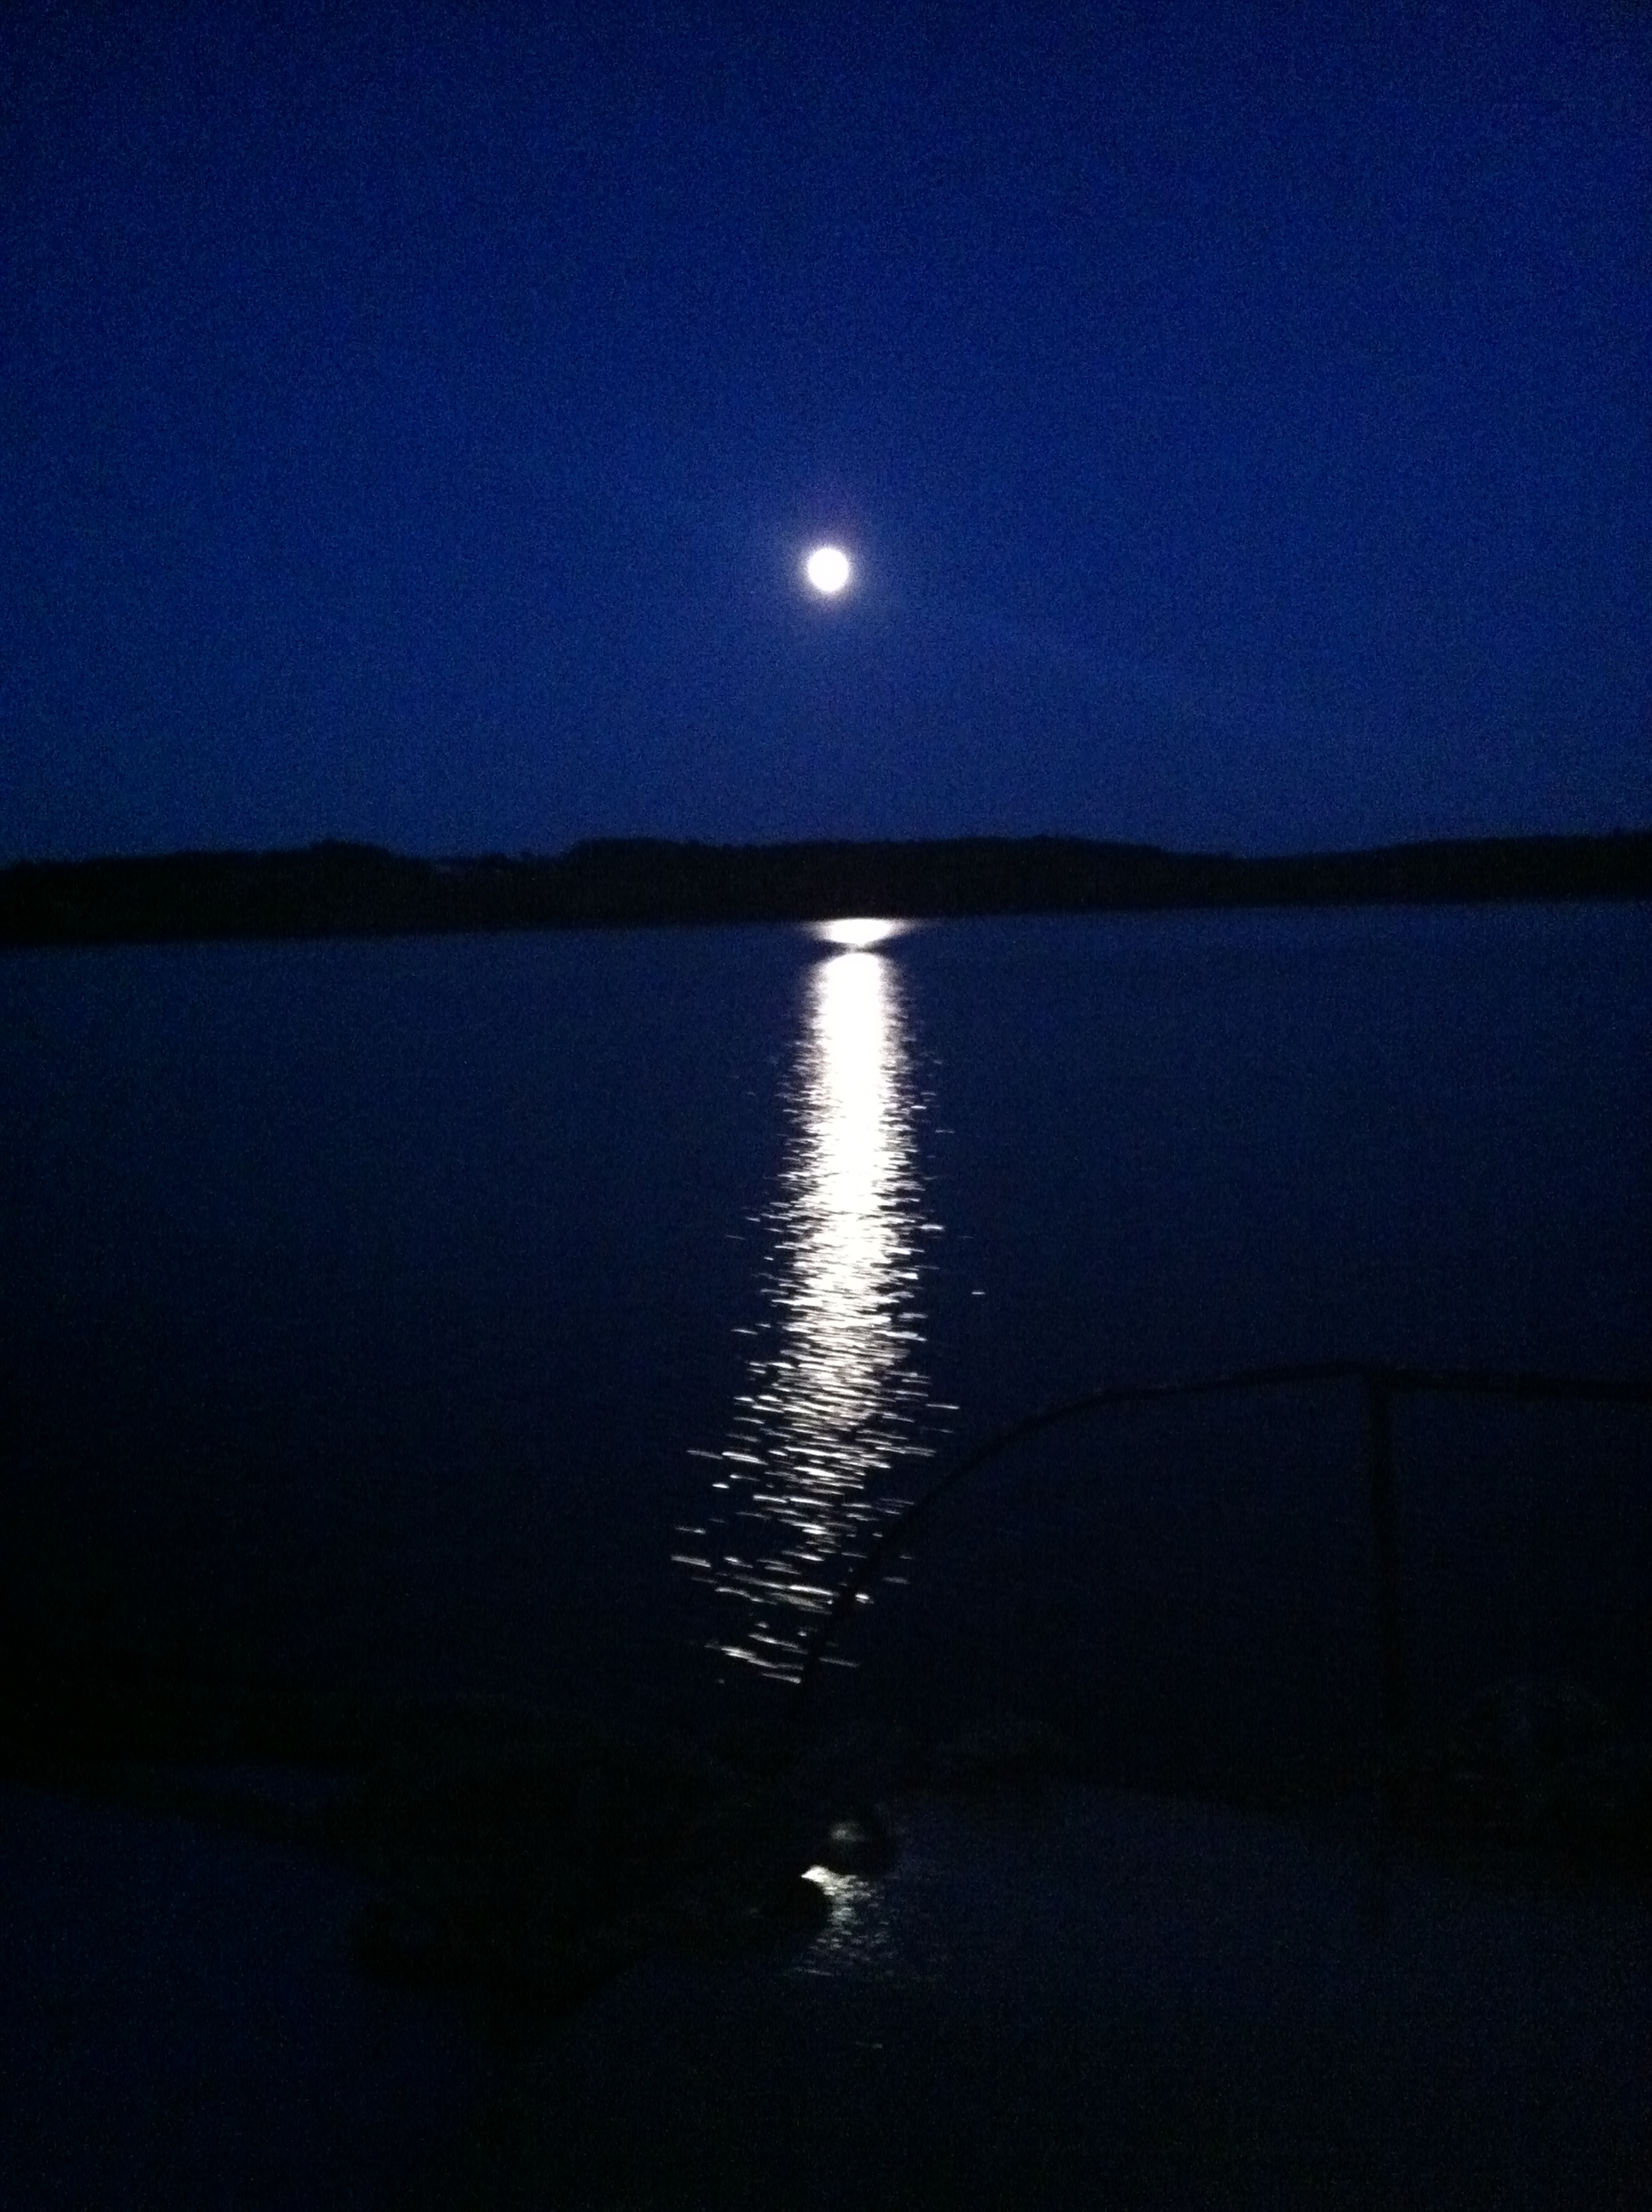 SAILING BY THE SUPERMOON